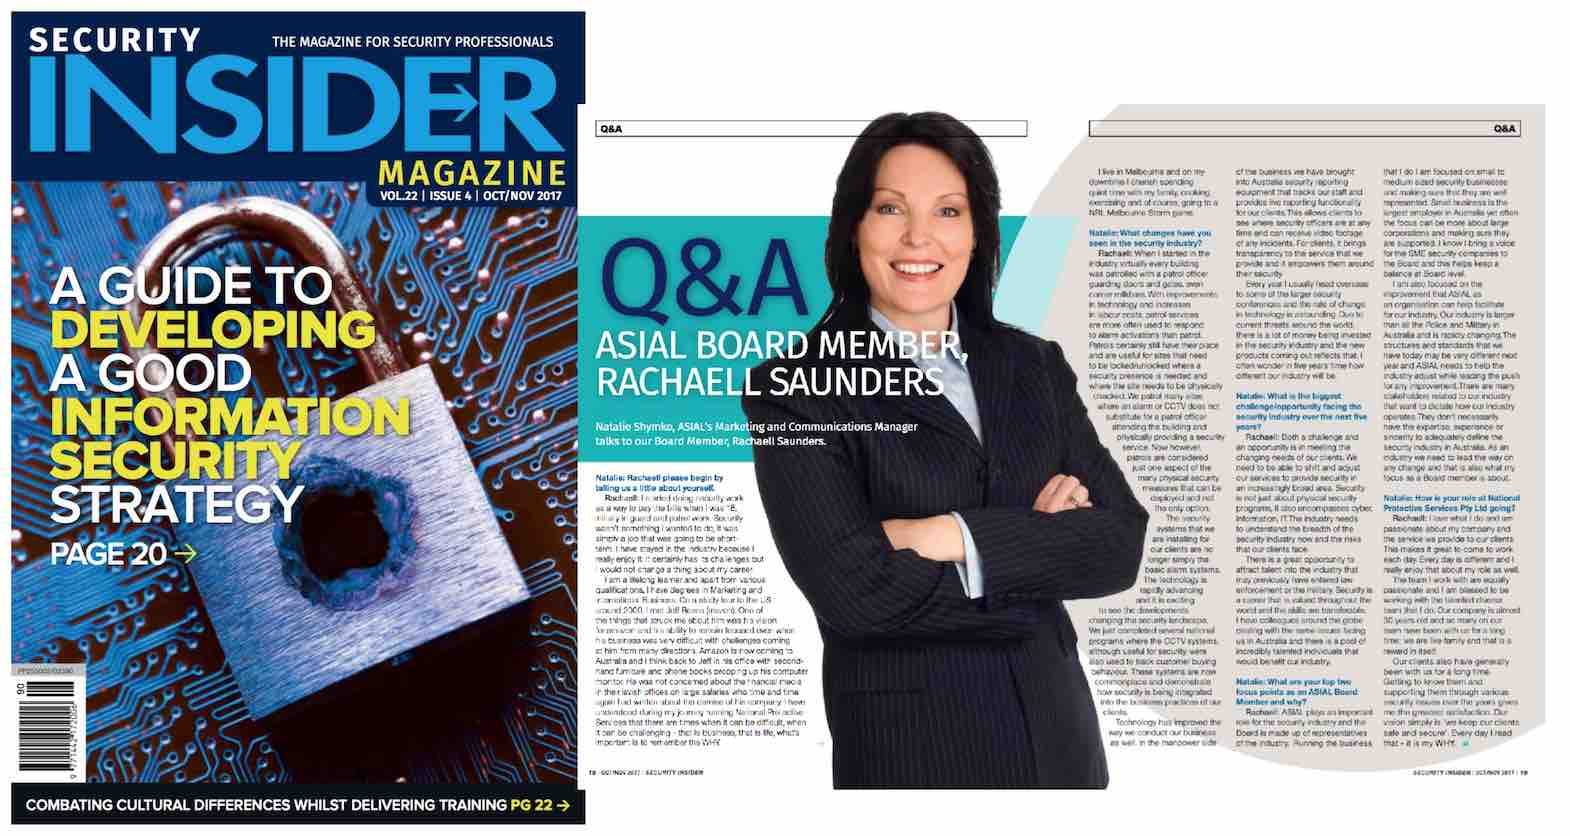 Rachaell Saunders went from security officer to CEO